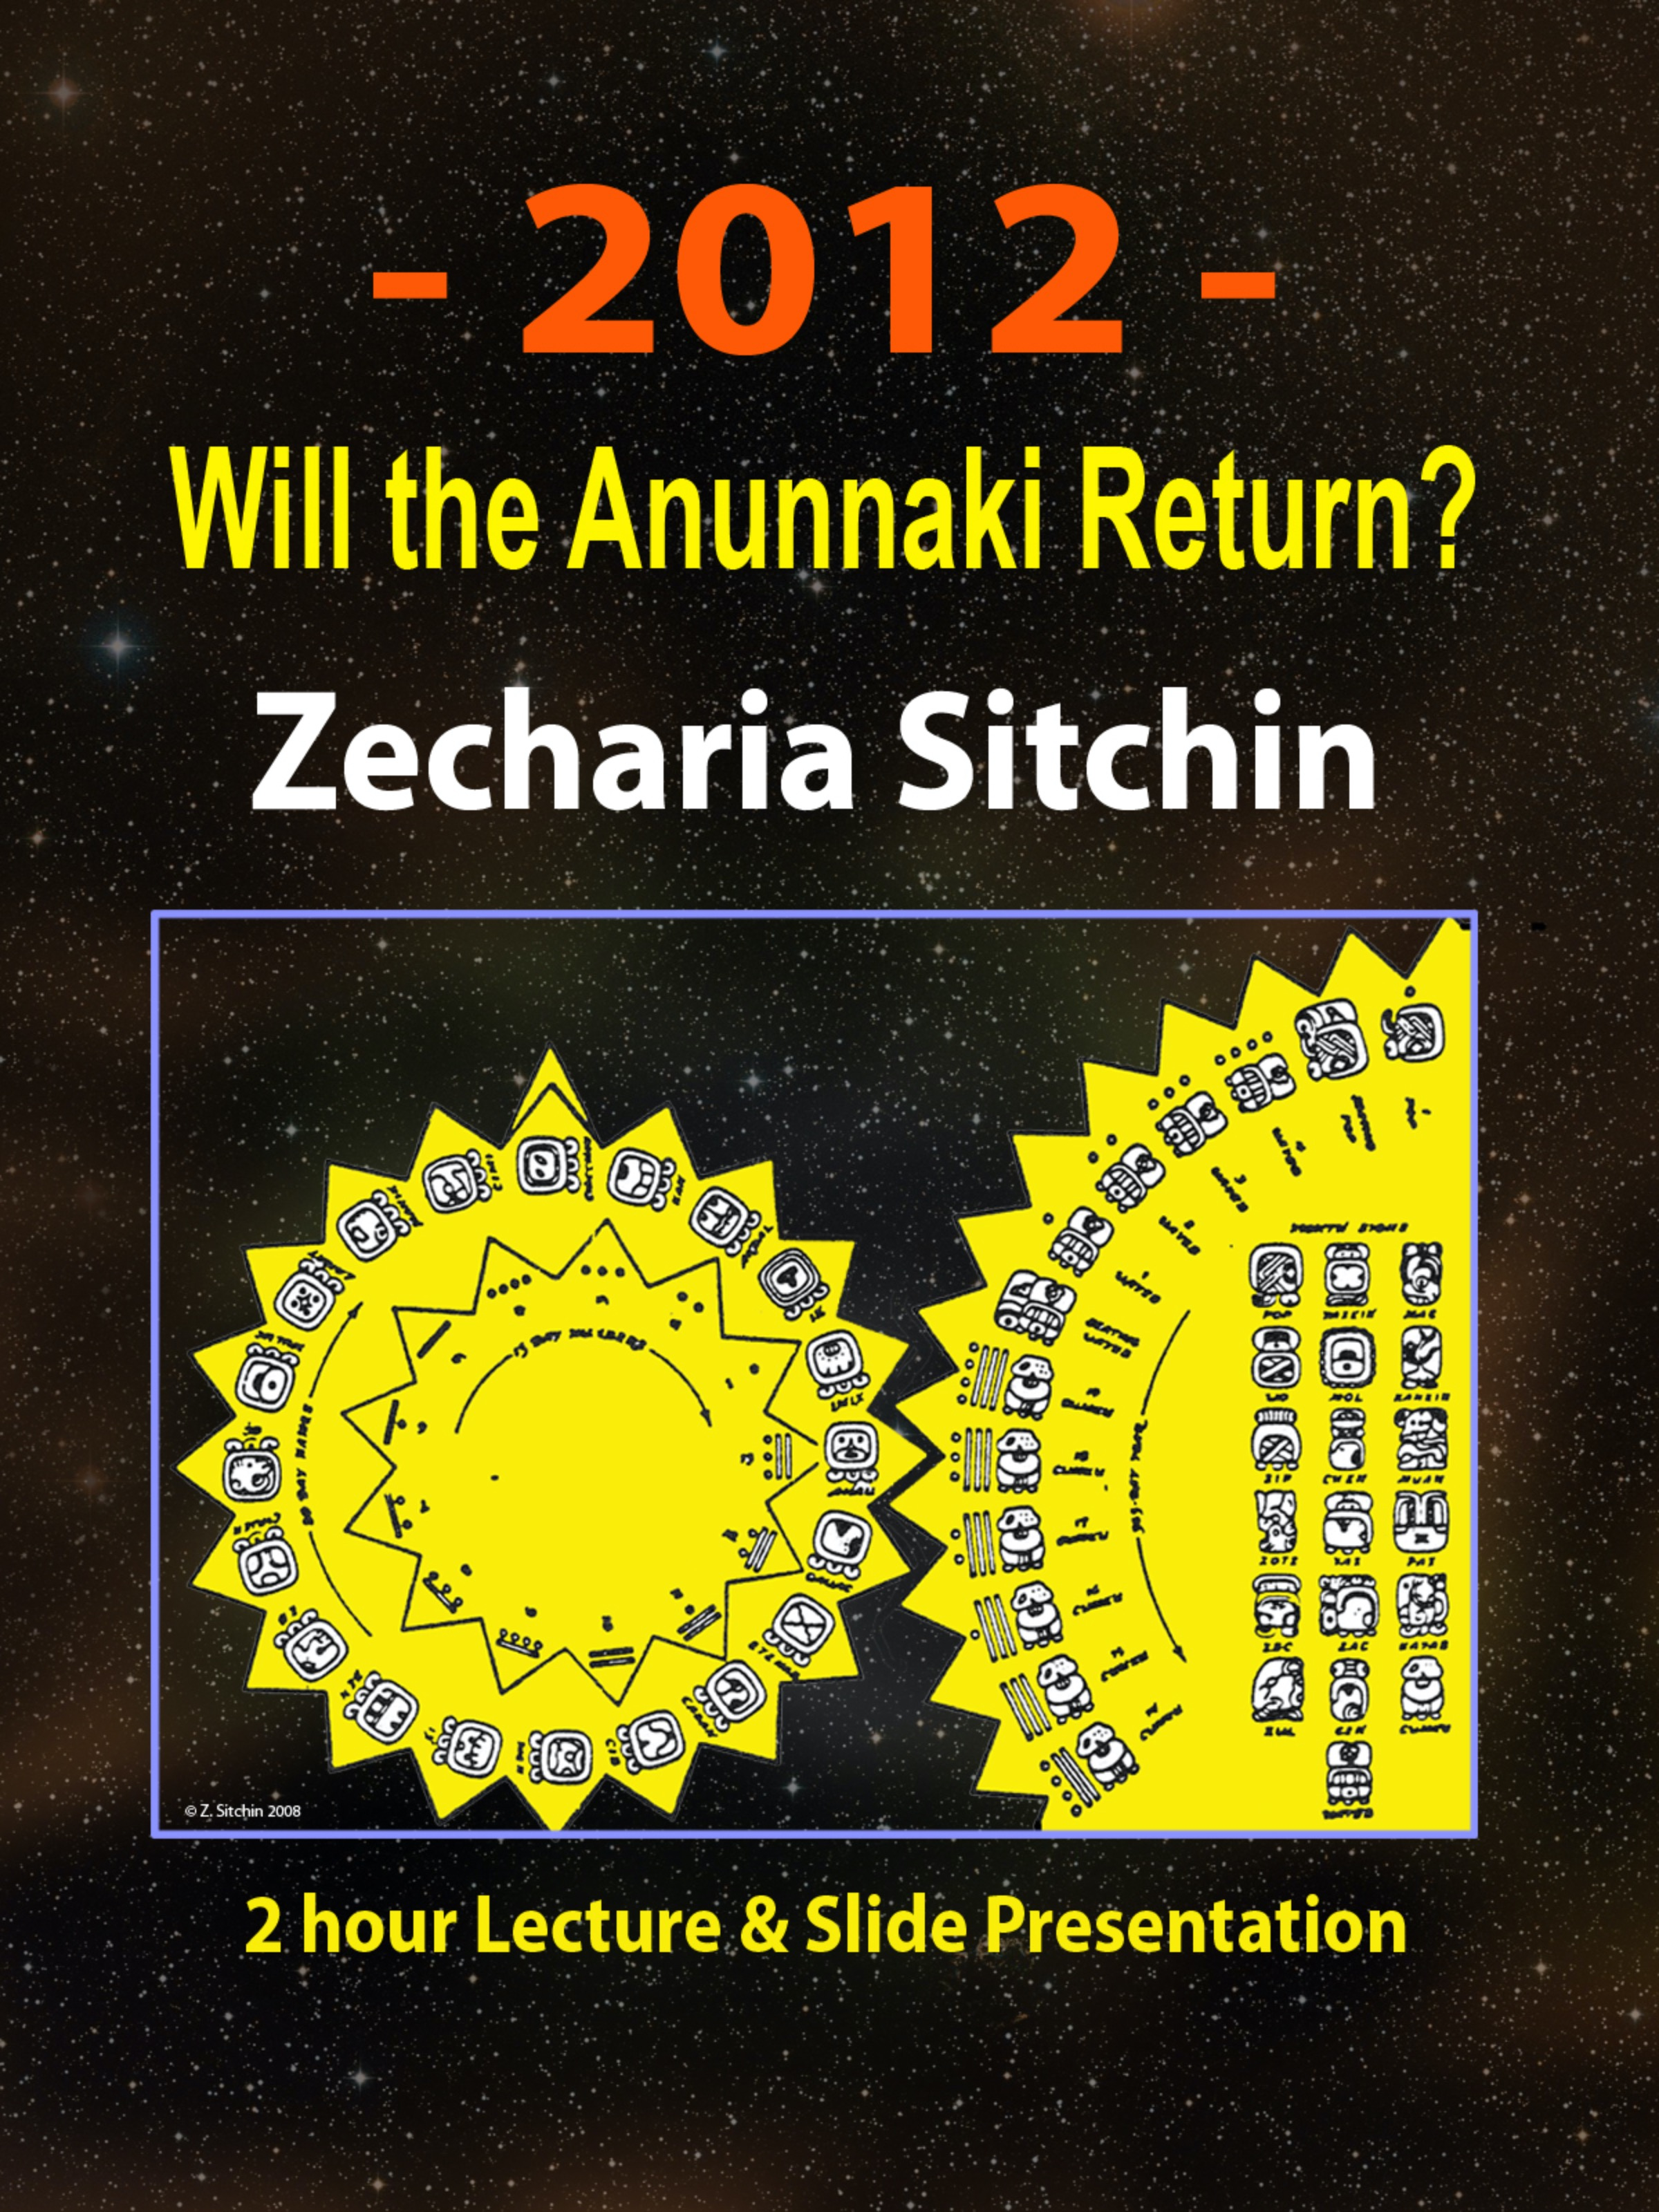 2012 -- Will the Anunnaki Return?